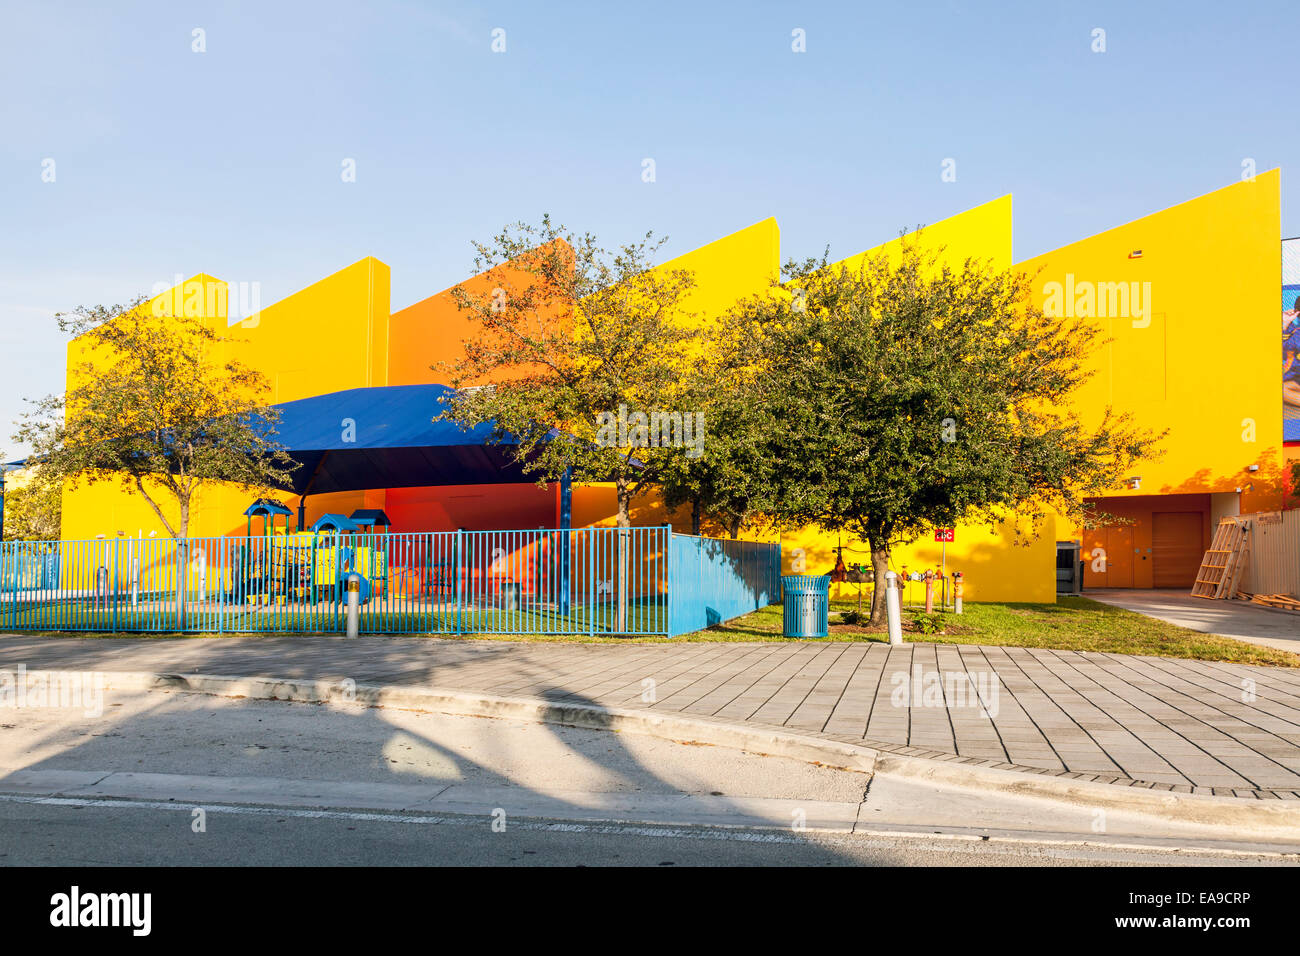 Brightly coloured colored Miami's Children's Museum fenced playground with shade awning in Miami Florida, USA. Stock Photo